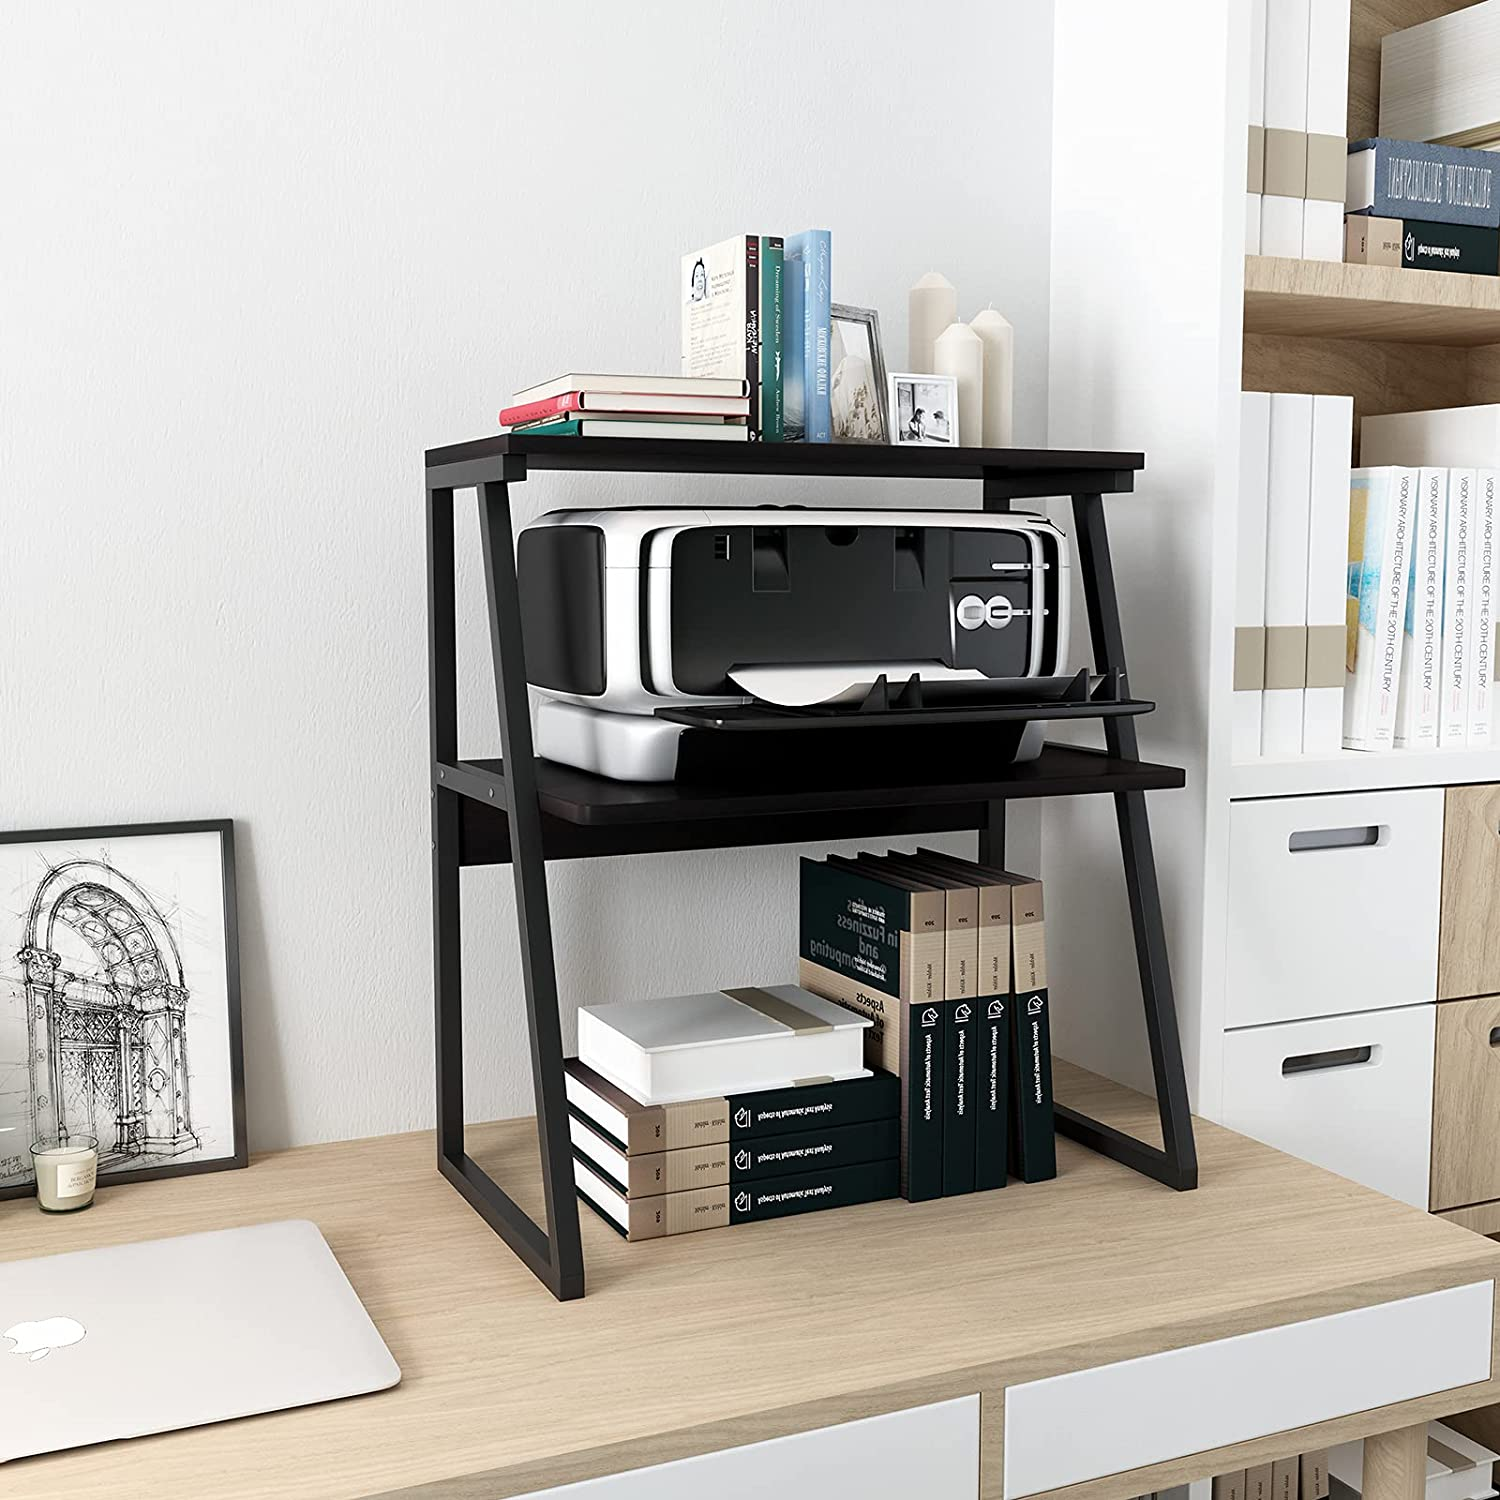 Complete Free Shipping PUNCIA Desktop Printer Stand 3-Tier High Sto Large Capacity Size Baltimore Mall